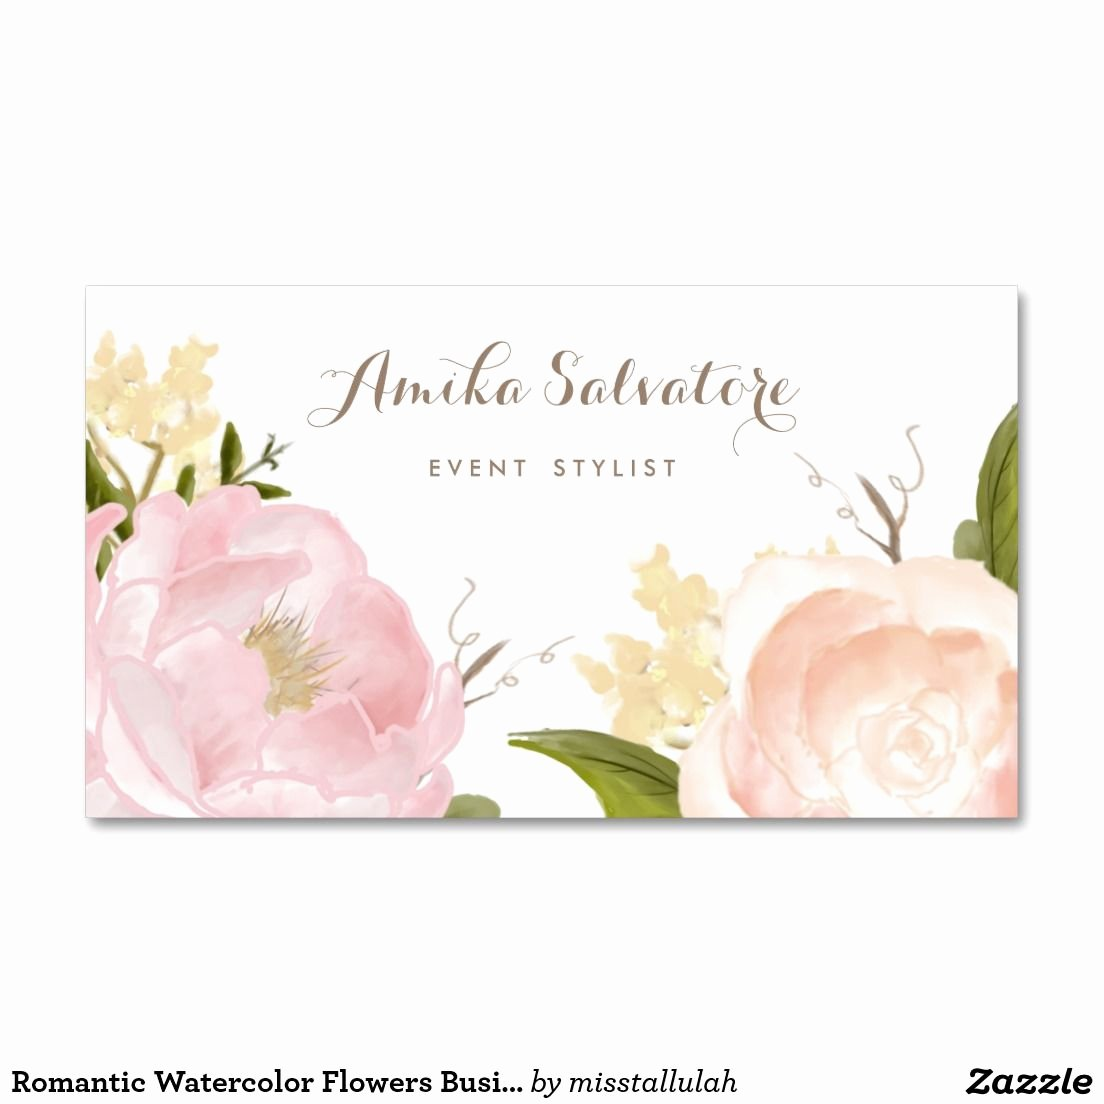 Florist Business Cards Design Fresh Romantic Watercolor Flowers Business Card